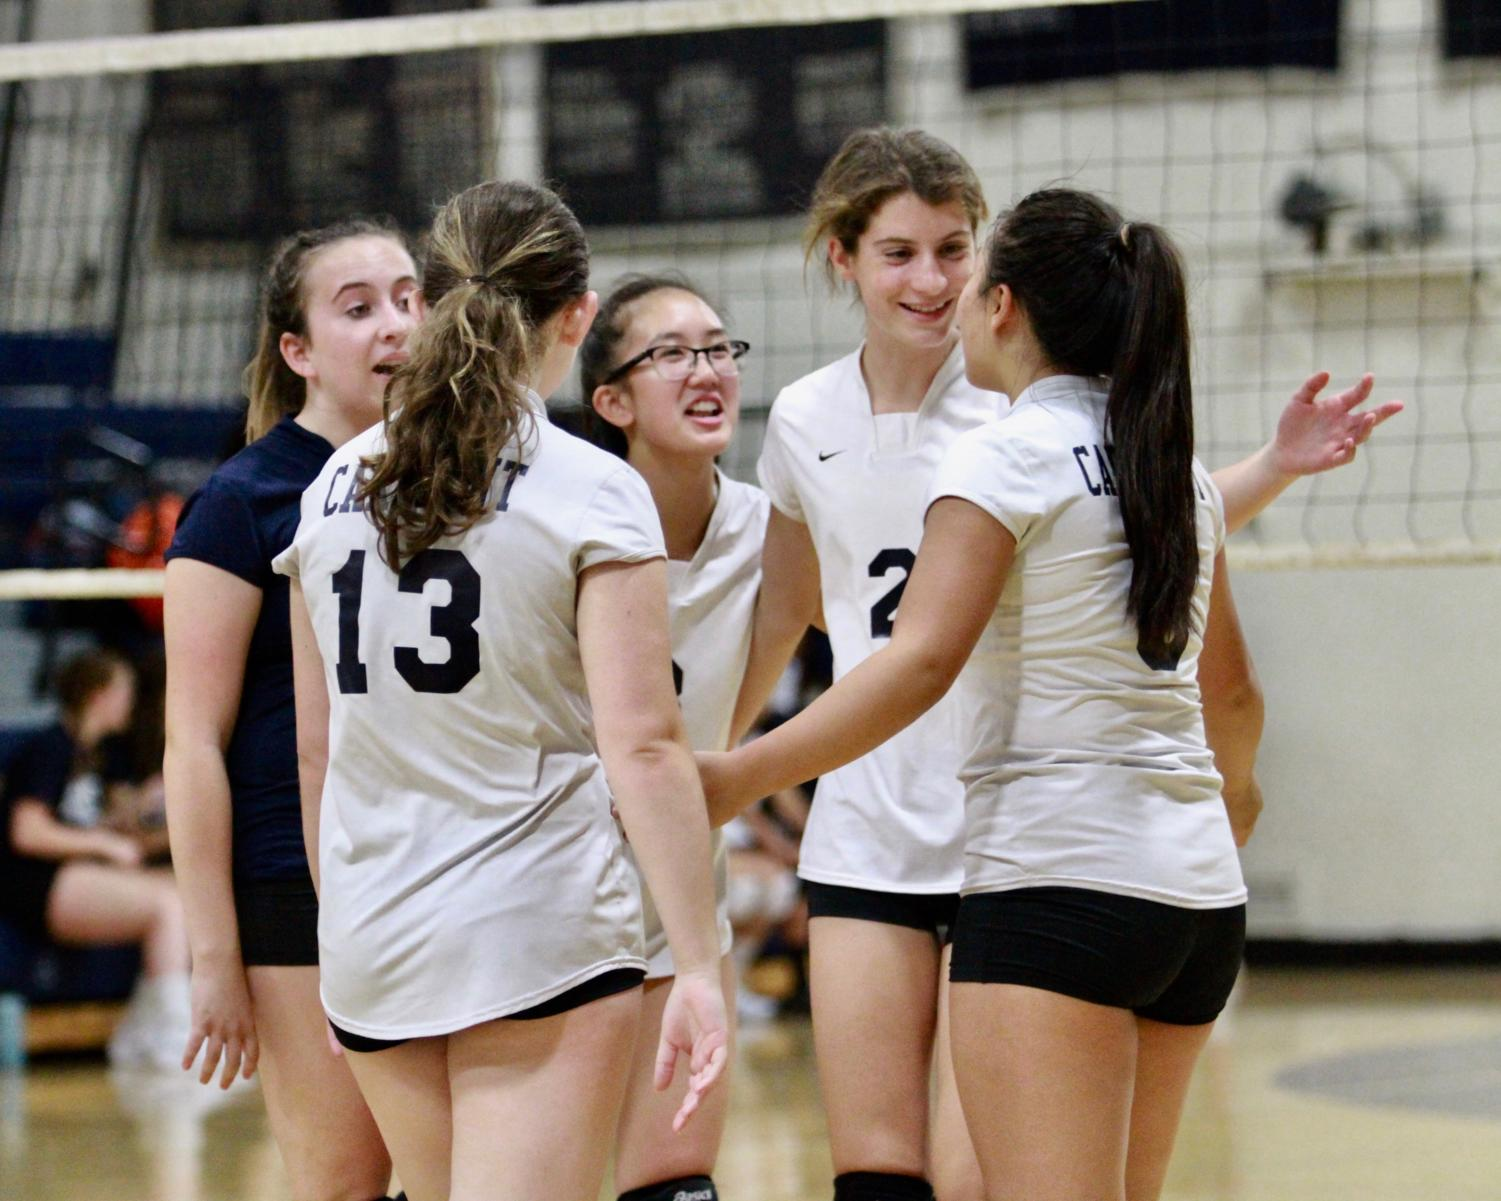 Carlmont's freshman volleyball team had strong communication in their third game against Sacred Heart Preparatory.